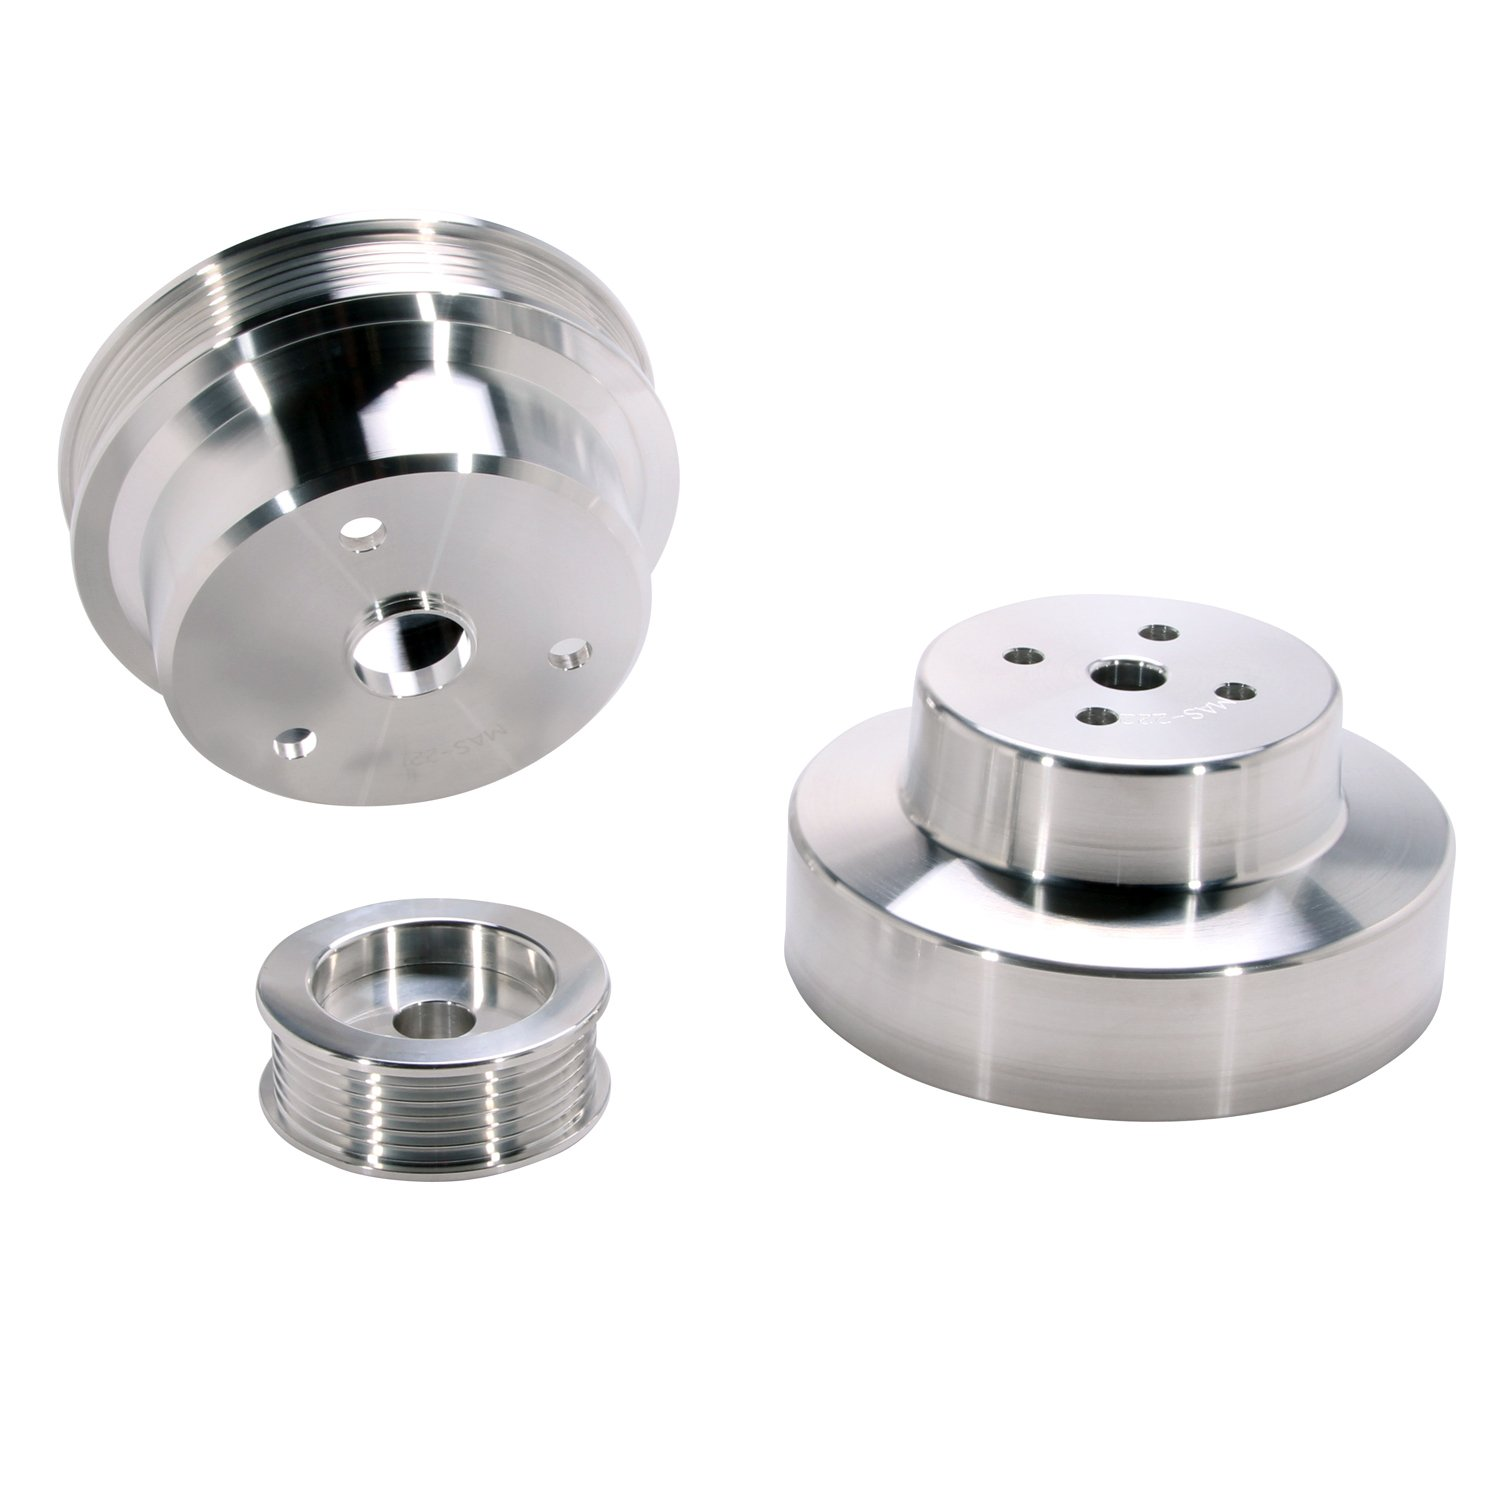 BBK 1603 Underdrive Pulley Kit for GM Truck 4.3/5.0/5.7L - 3 Piece CNC Machined Aluminum by BBK Performance (Image #2)